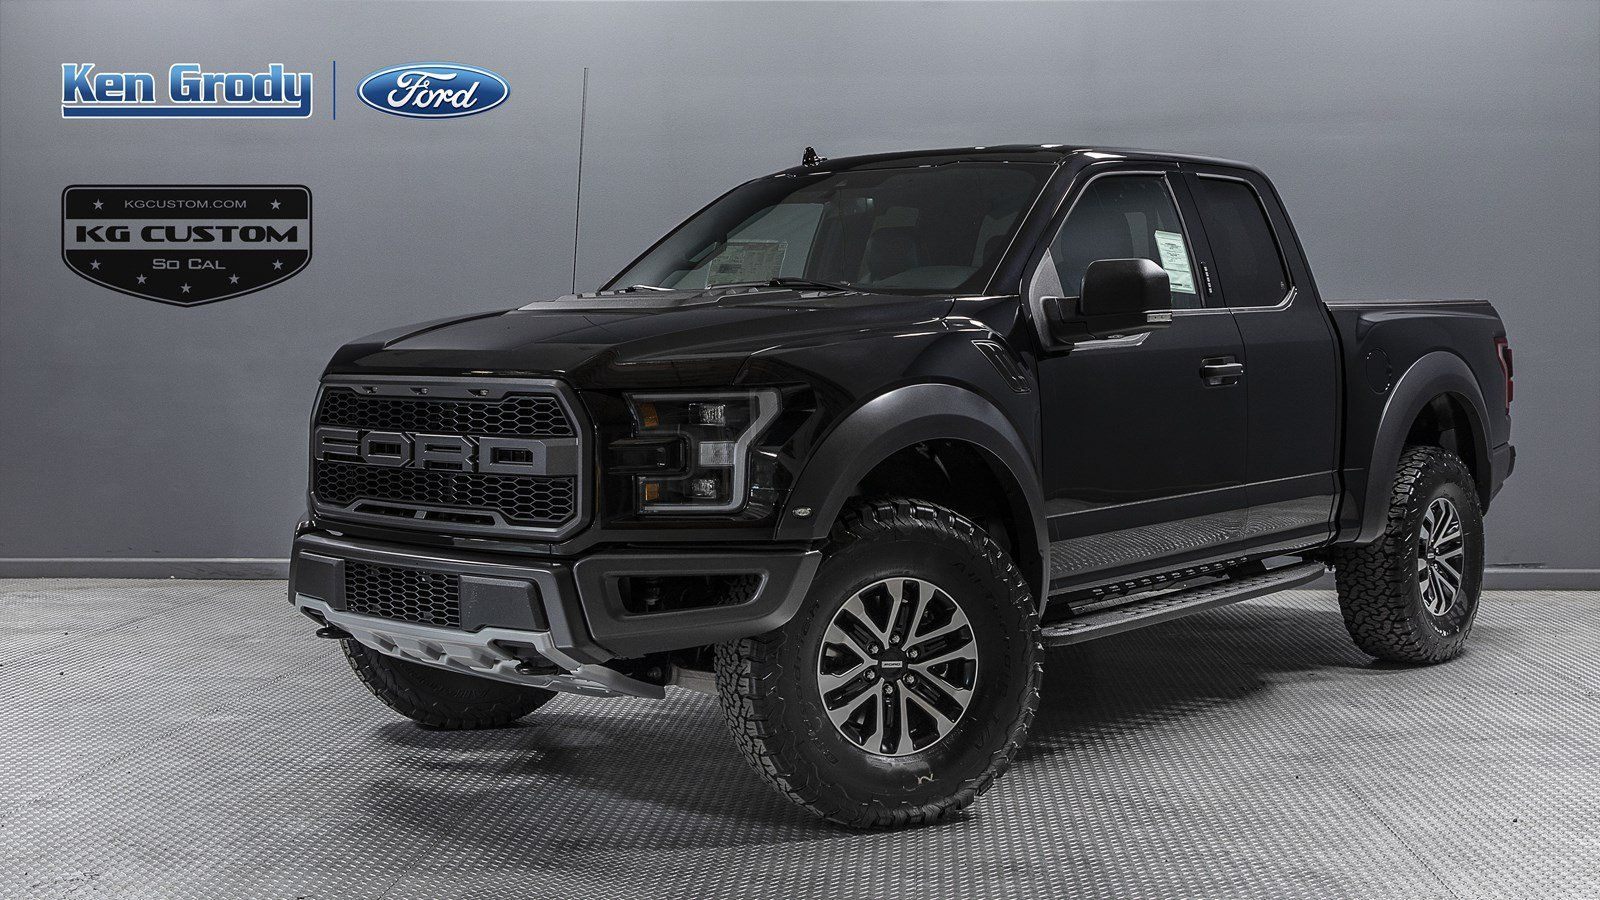 2020 All Ford F150 Raptor In 2020 Ford F150 Raptor Ford F150 Toyota Racing Development